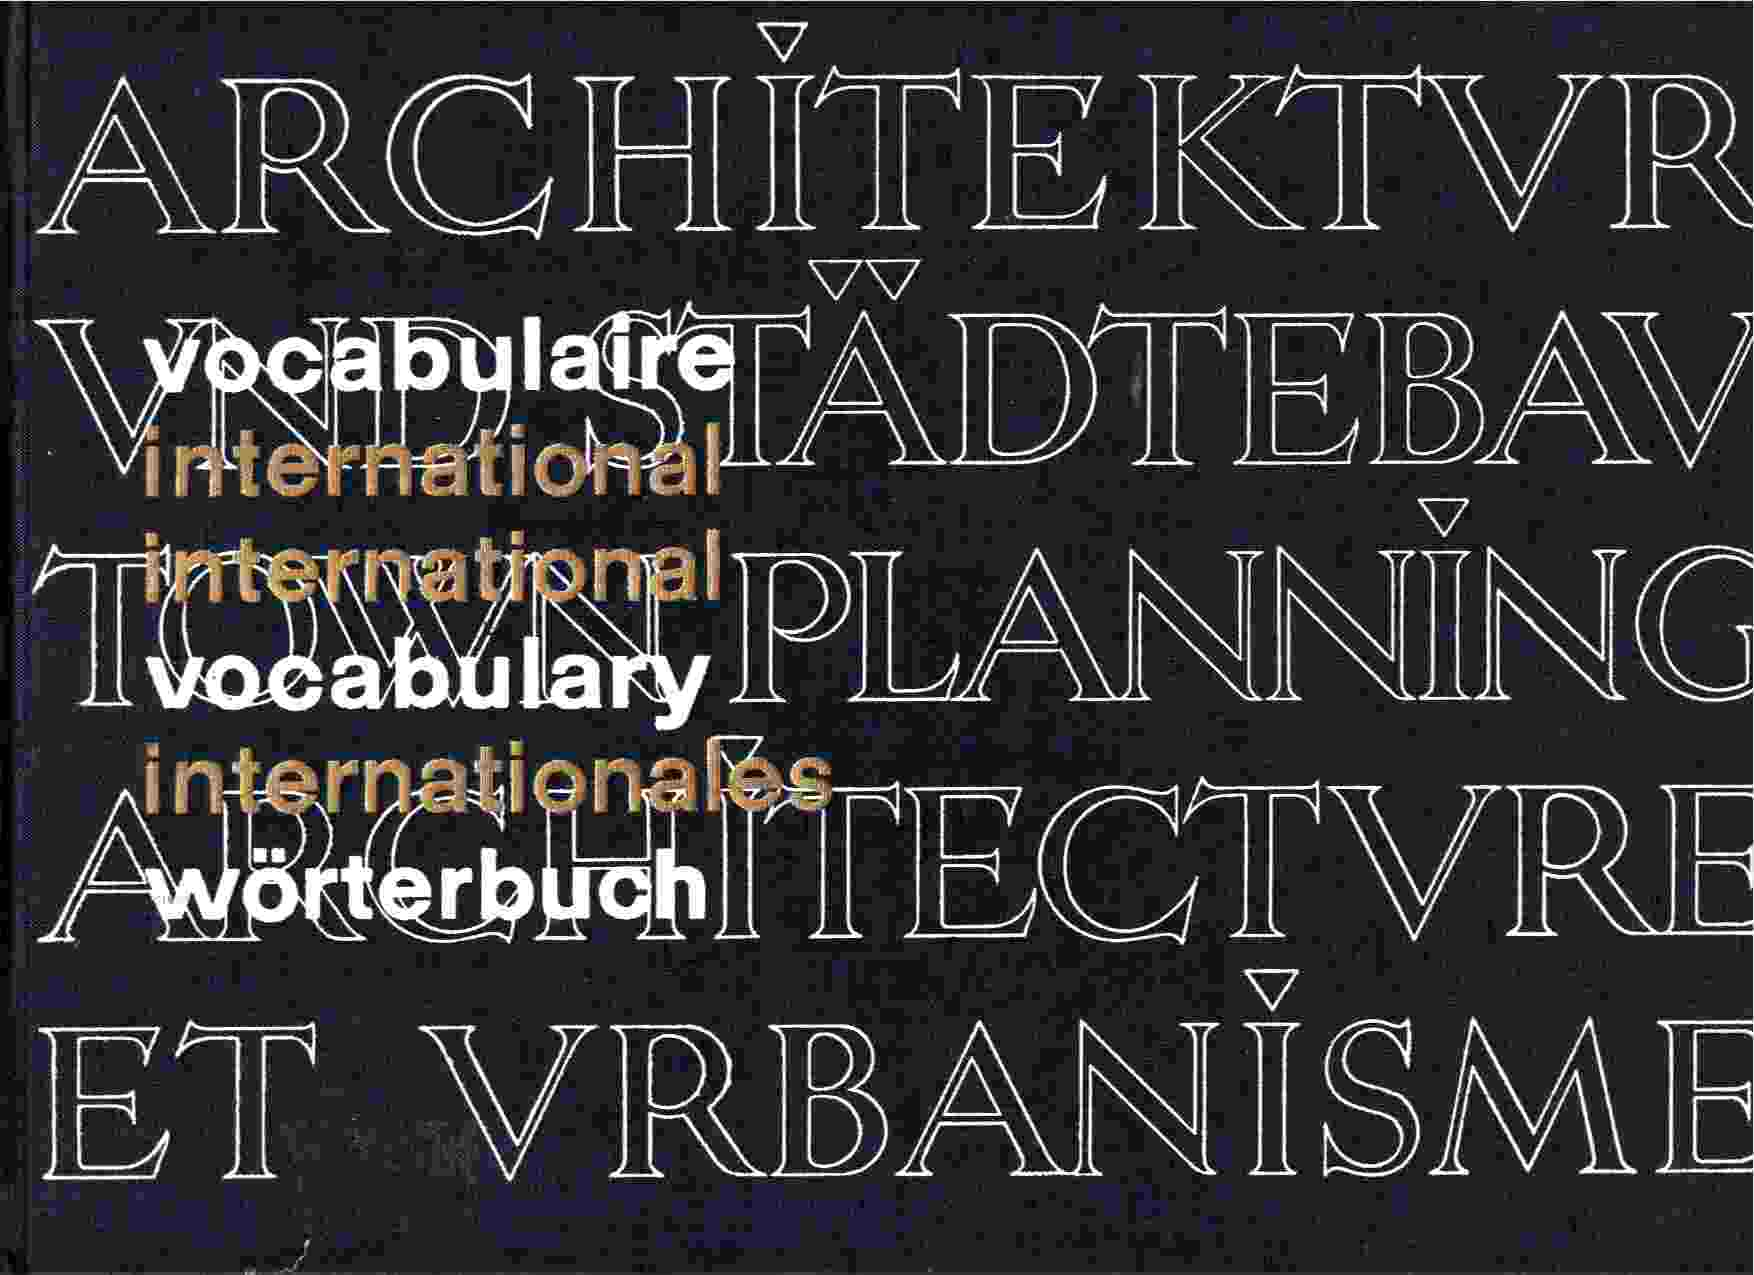 Image for Vocabulaire International Des Termes D'Urbanisme Et D'Architecture / Internationales Wörterbuch Für Städtebau Und Architektur / International Vocabulary of Town Planning and Architecture